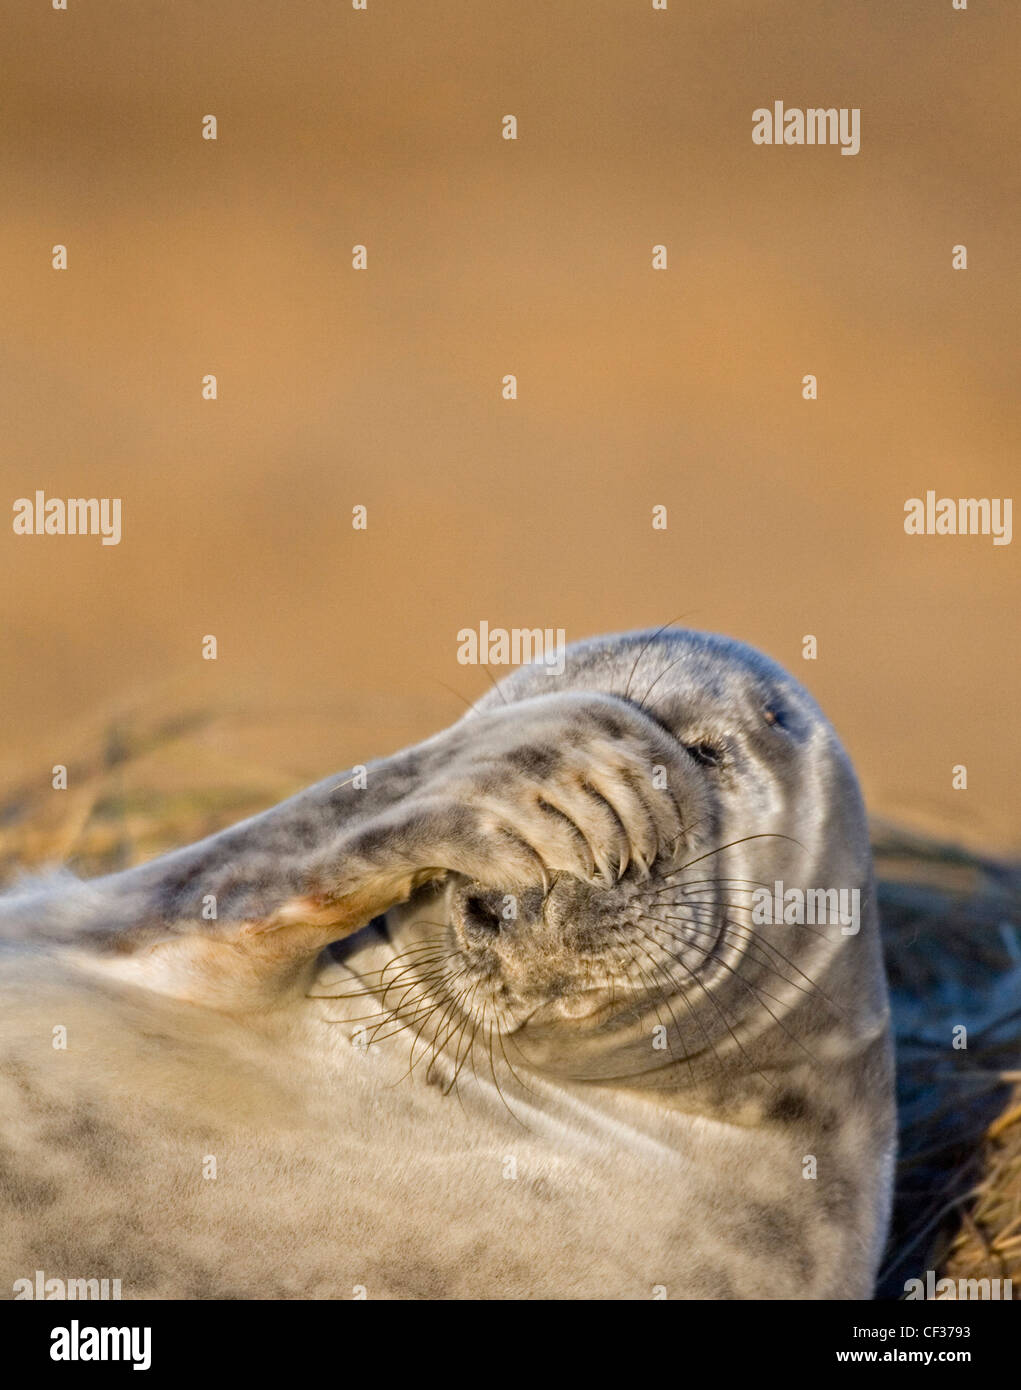 Close-up of a grey seal (Halichoerus grypus) at Donna Nook in Lincolnshire. Stock Photo